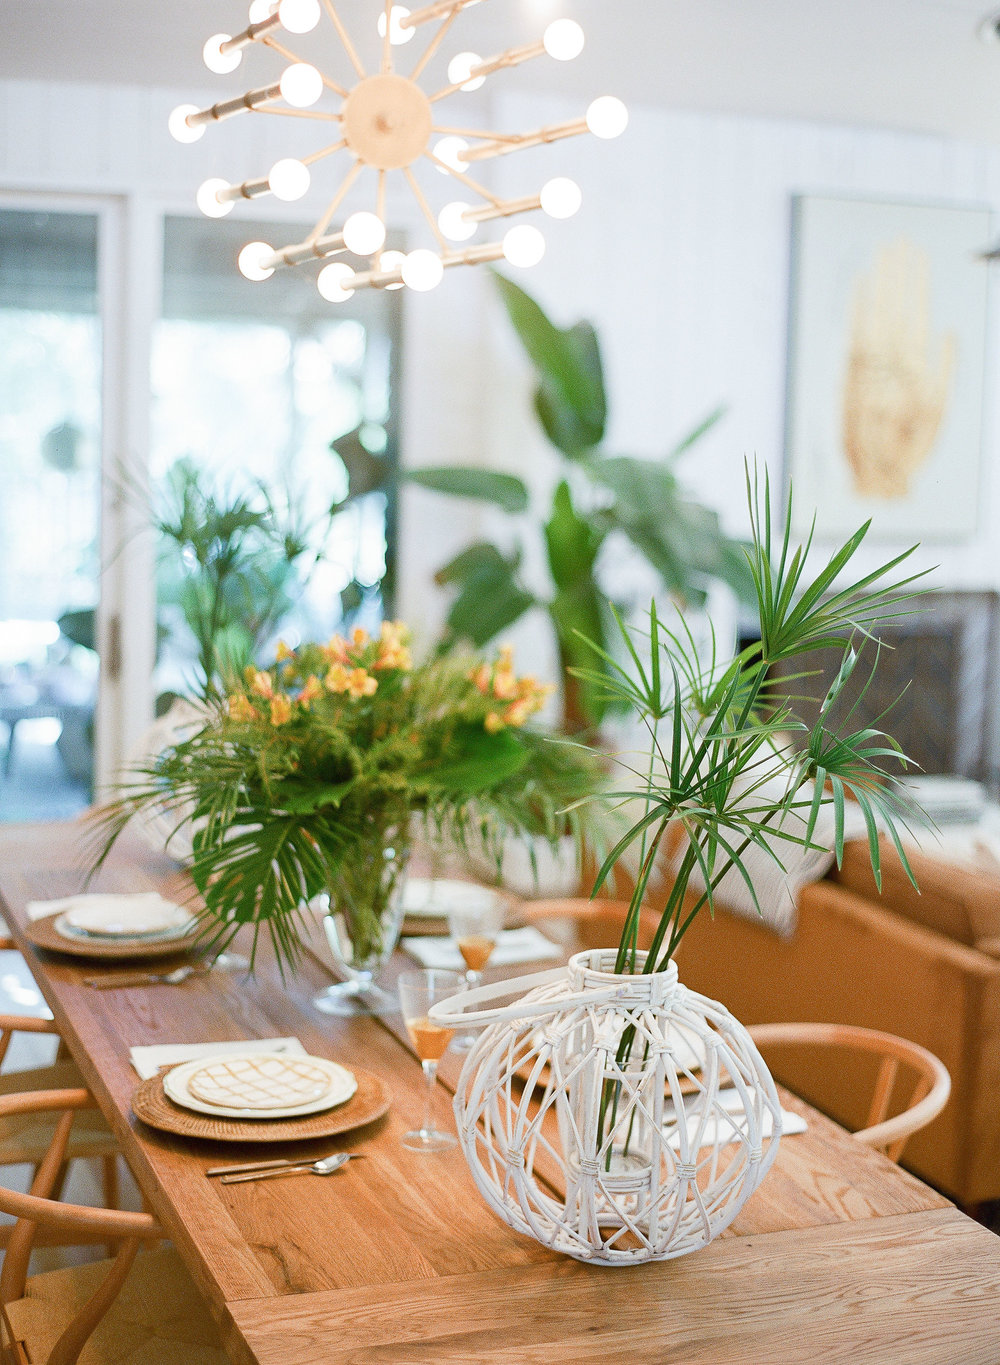 Natural tablescape with wooden elements and tropical plant centerpiece